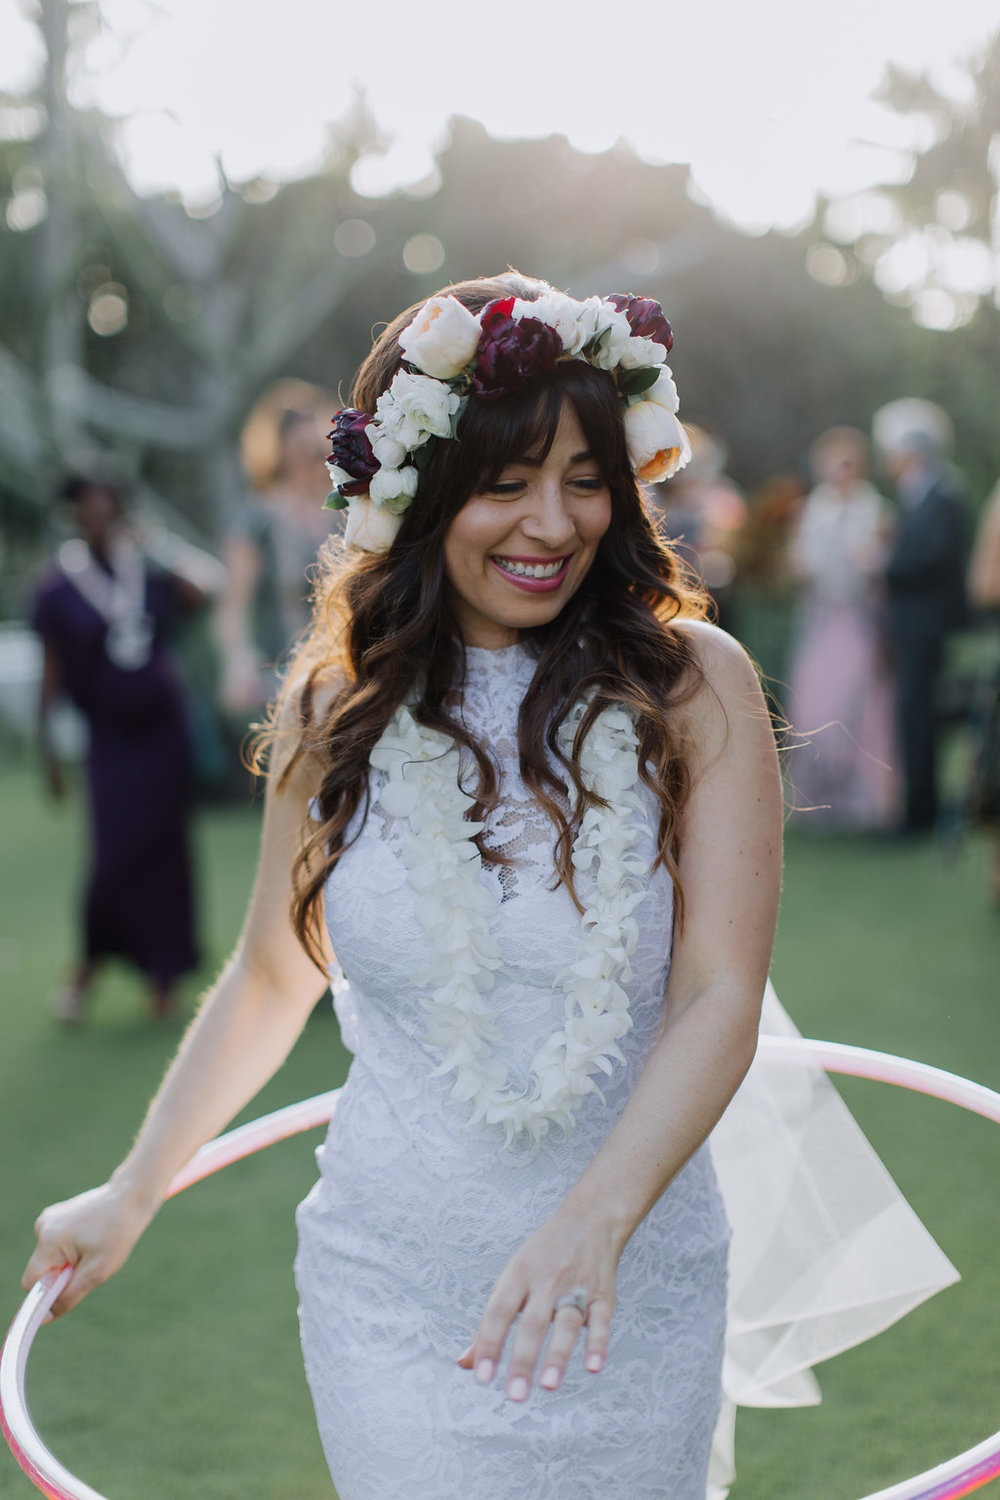 The Hula Hoop Girl is The Hula Hooping Bride! - The Hula Hoop Girl (Website, FB & @thehulahoopgirl) of Elemental Hoopdance is a most beautiful hula hoop bride in this stunning photo from her recent wedding. Congratulations Caroline Cárdenas! She lives in La Jolla, California, USA. Photo by Cadencia Photography.